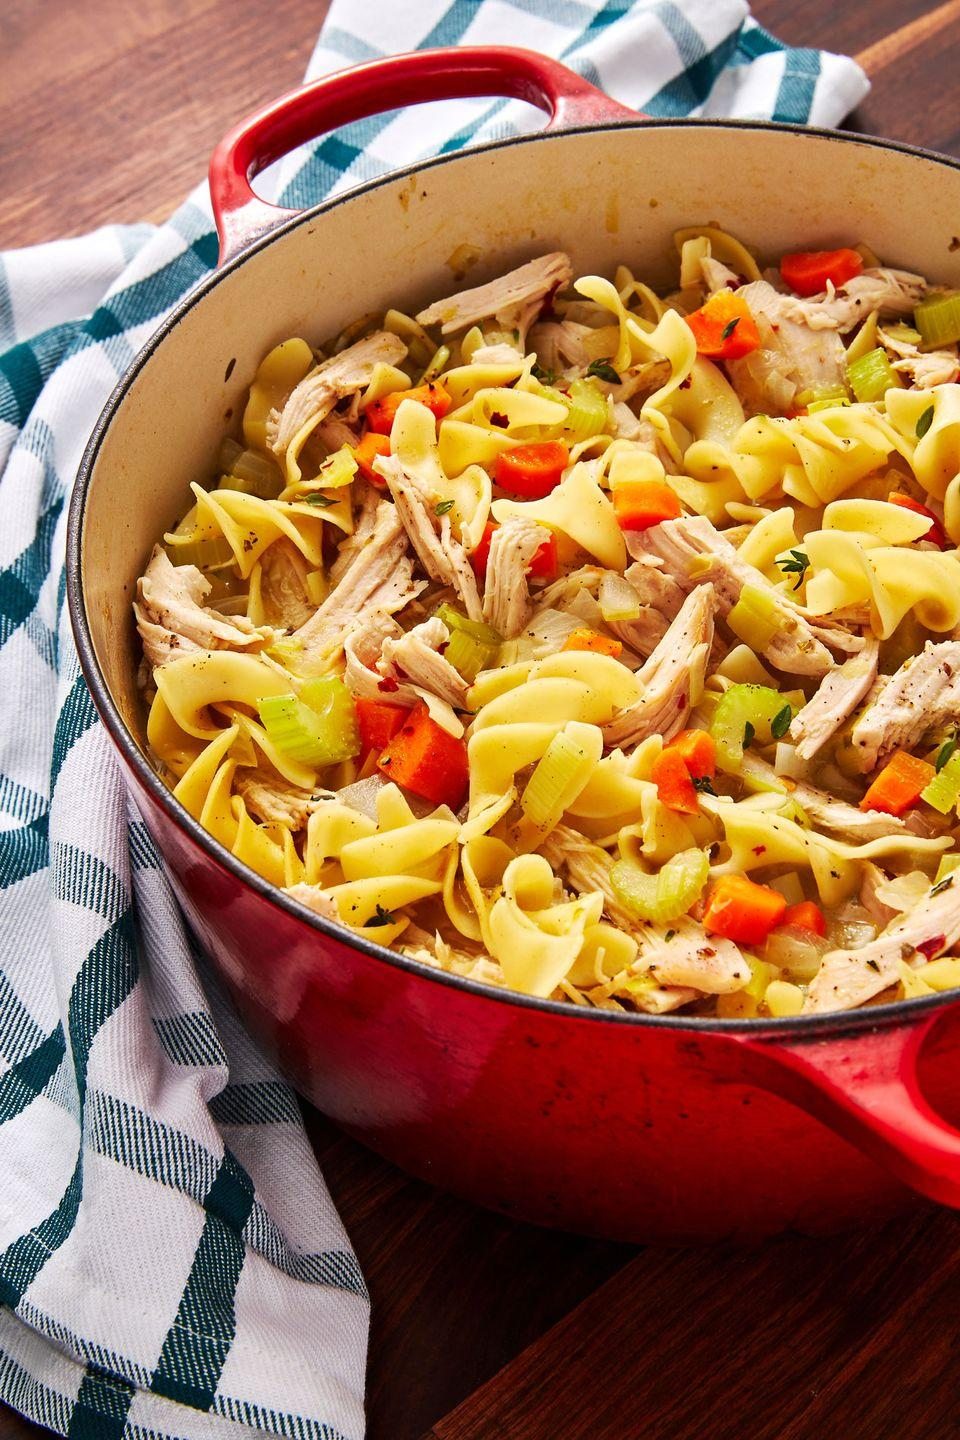 "<p>A warm (and easy!) way to use up leftover turkey.</p><p>Get the recipe from <a href=""https://www.delish.com/cooking/recipe-ideas/a29089192/turkey-noodle-soup-recipe/"" rel=""nofollow noopener"" target=""_blank"" data-ylk=""slk:Delish"" class=""link rapid-noclick-resp"">Delish</a>.</p>"